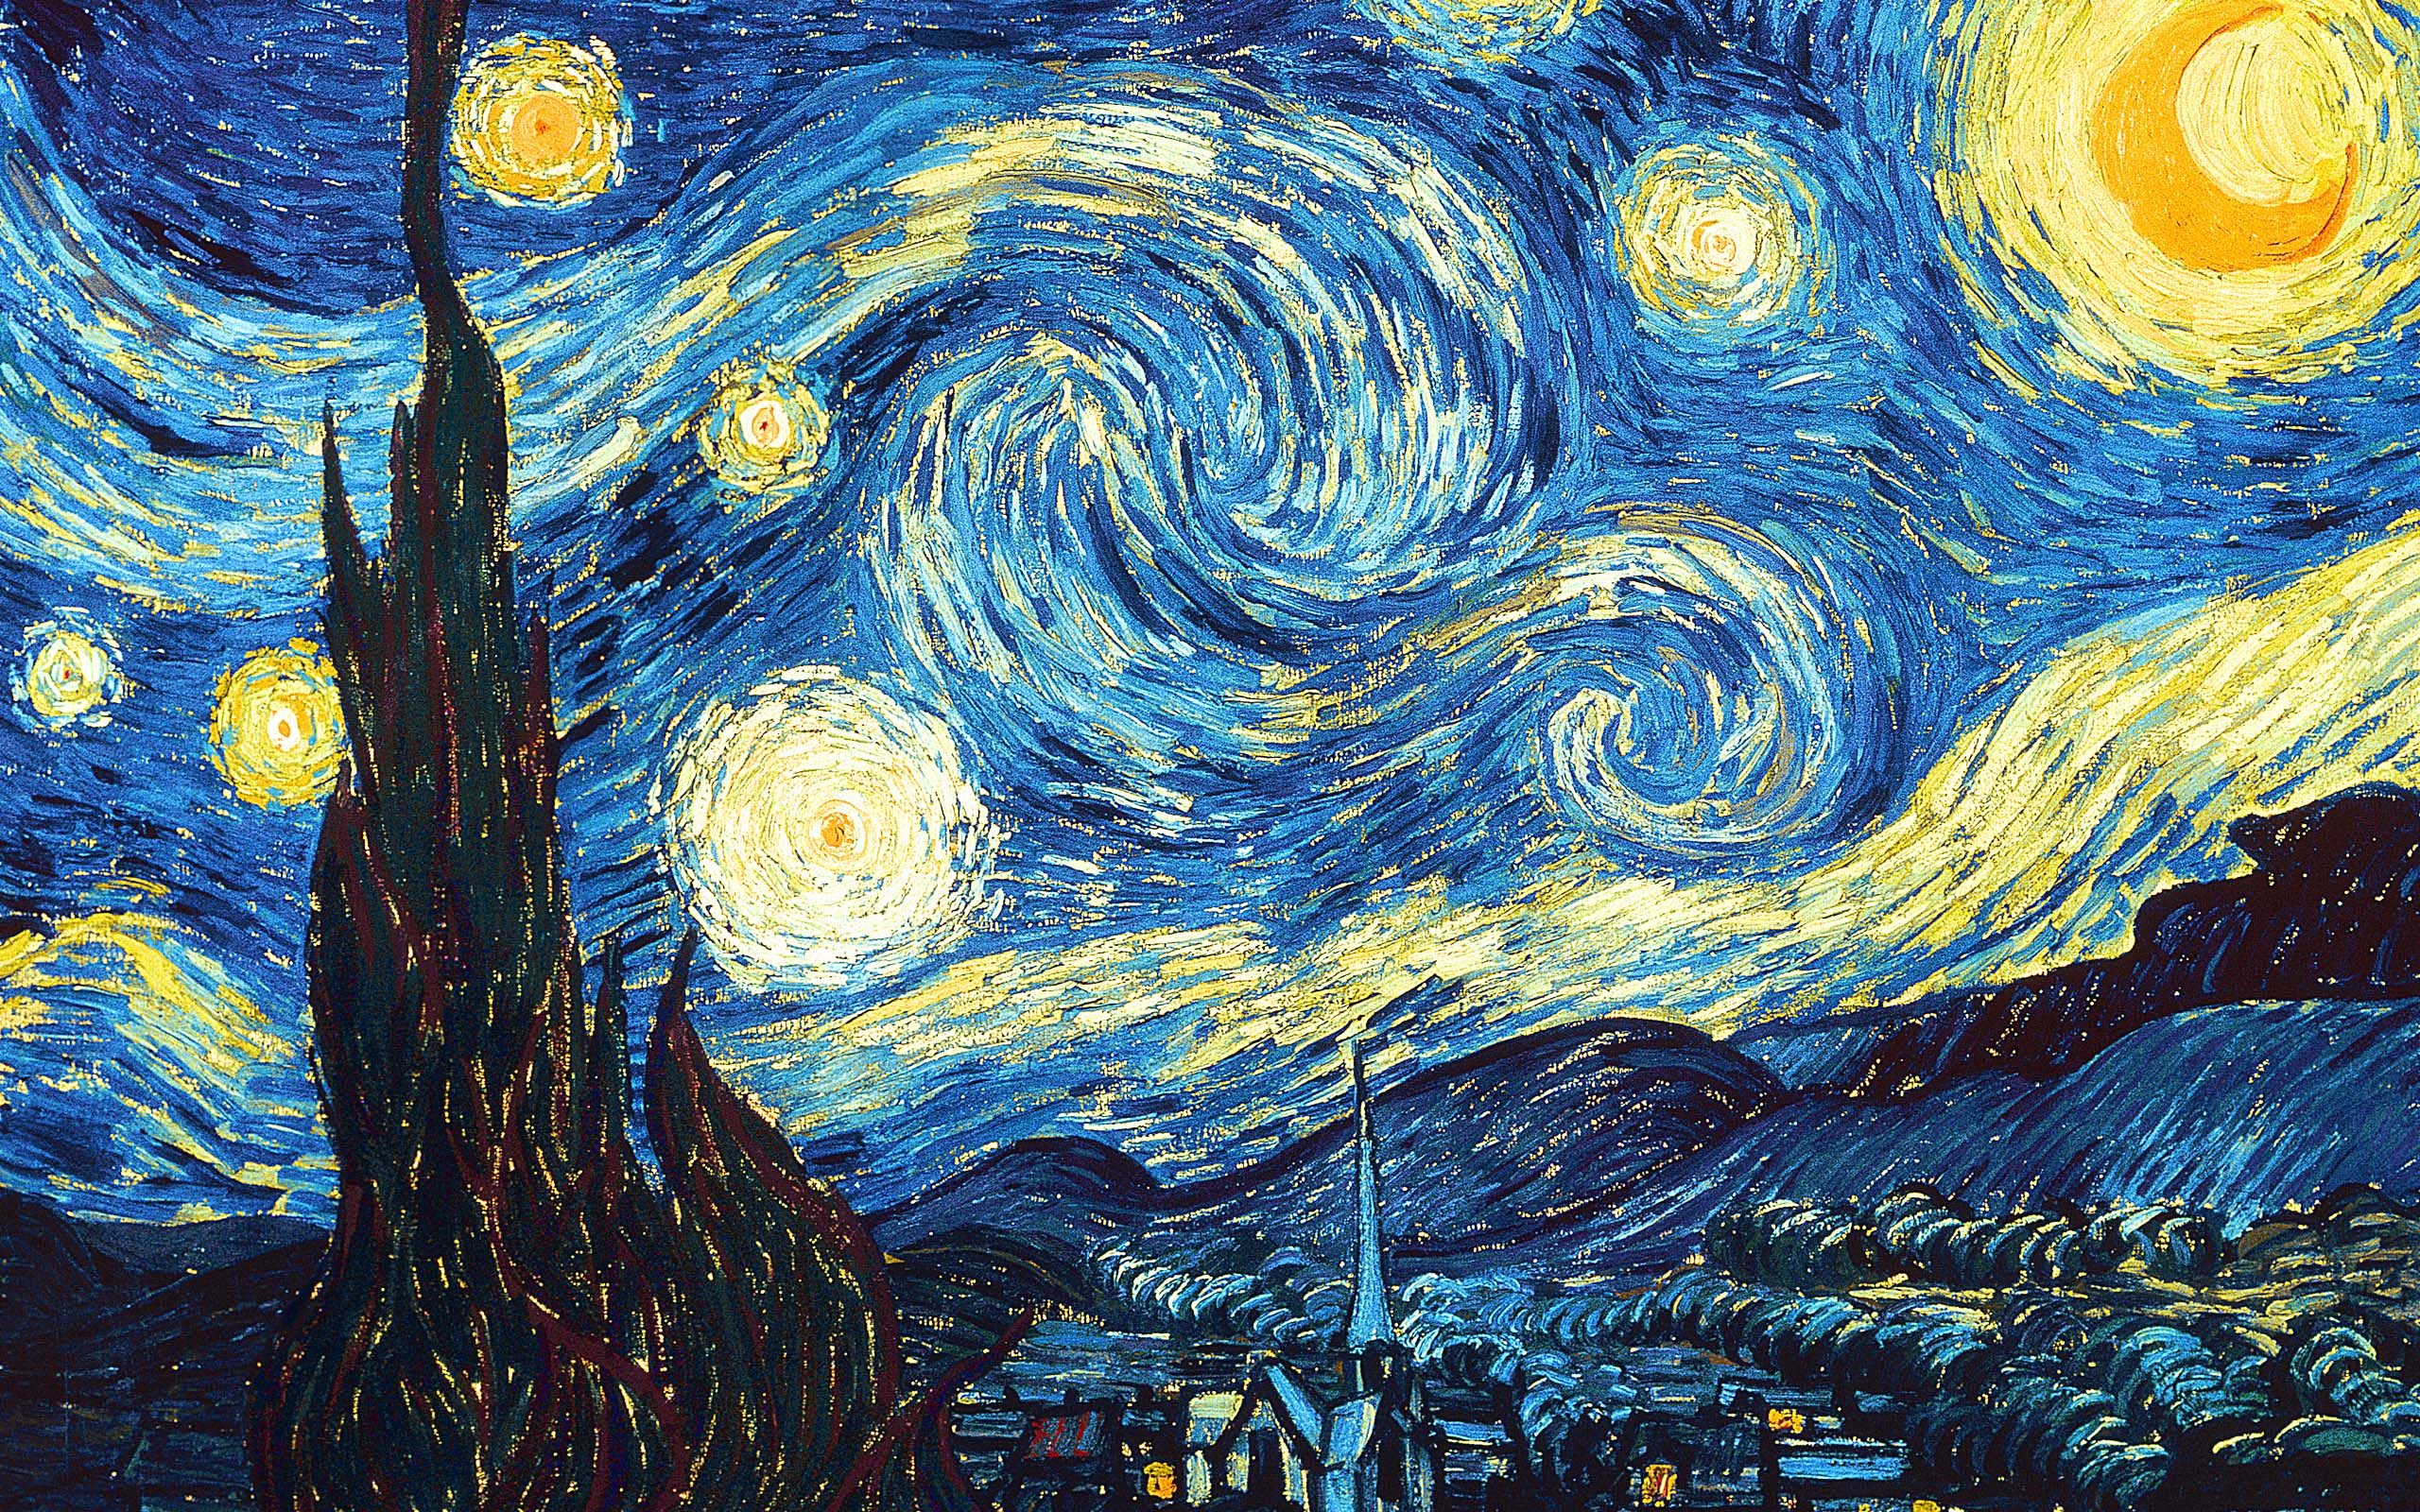 van goghs life and work Find the latest shows, biography, and artworks for sale by vincent van gogh primarily self-taught and unappreciated during his lifetime, vincent van gogh ma.